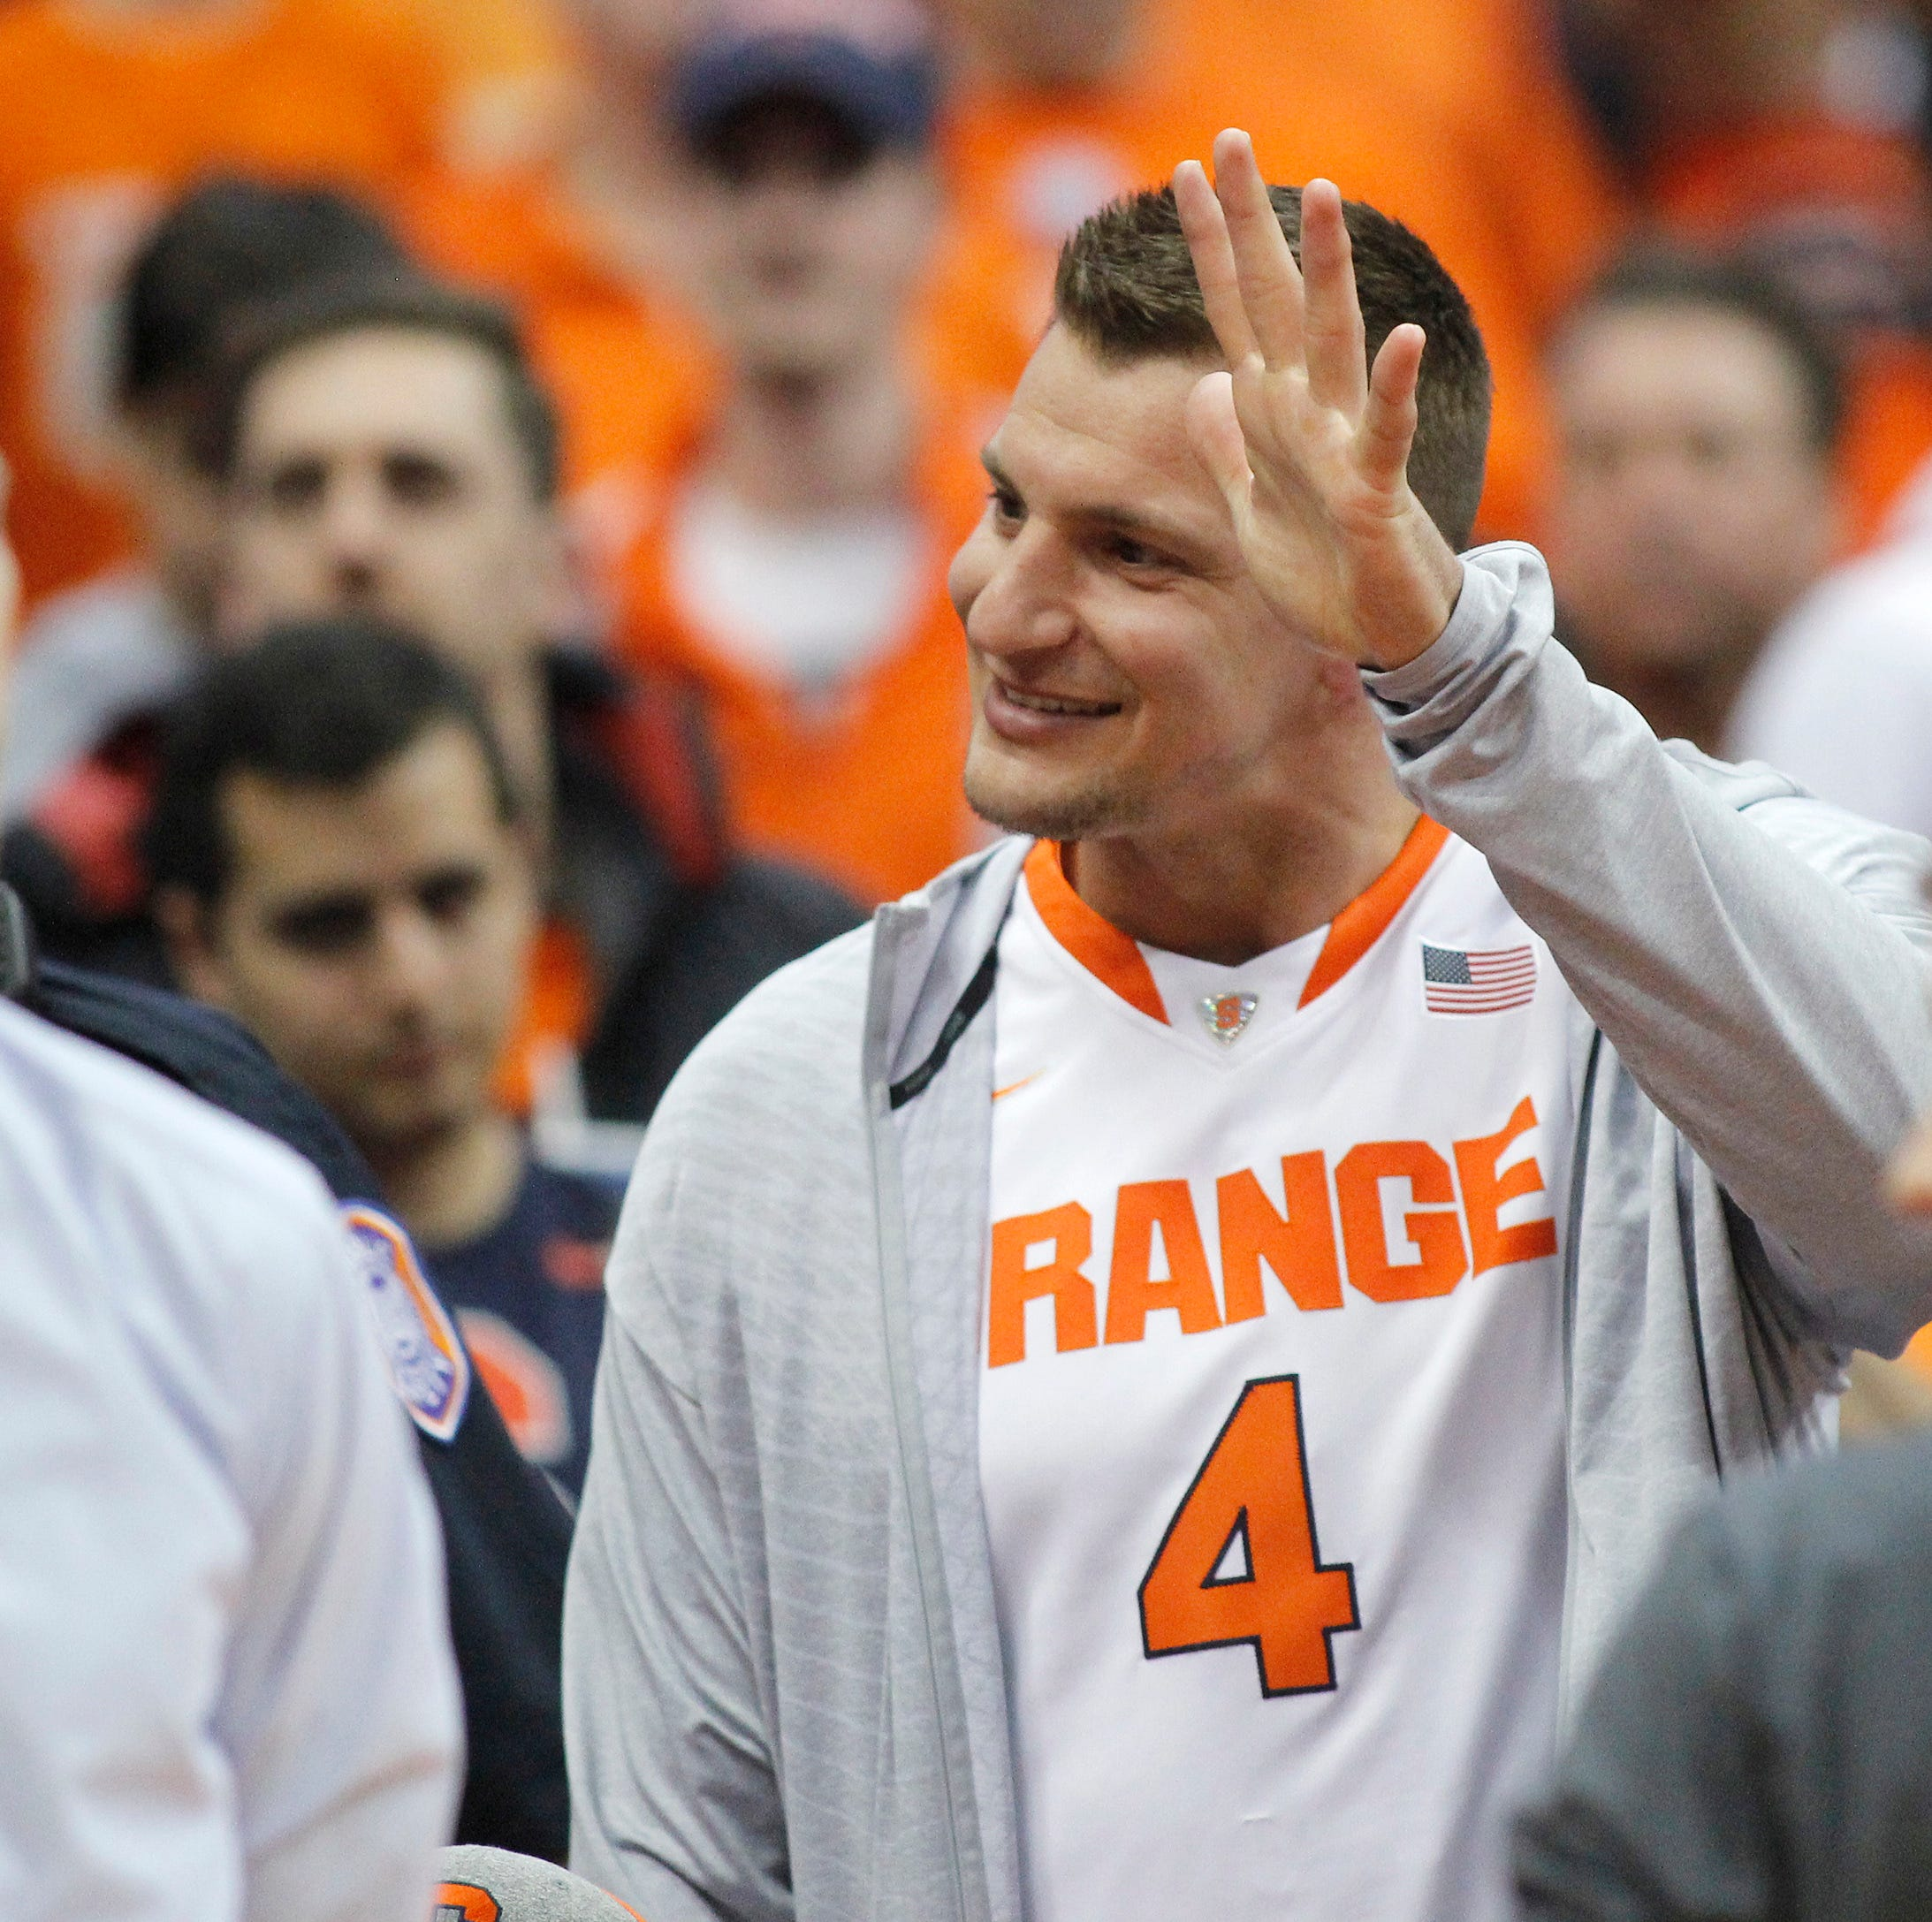 See Patriots tight end Rob Gronkowski in the crowd for Syracuse vs. Duke men's basketball